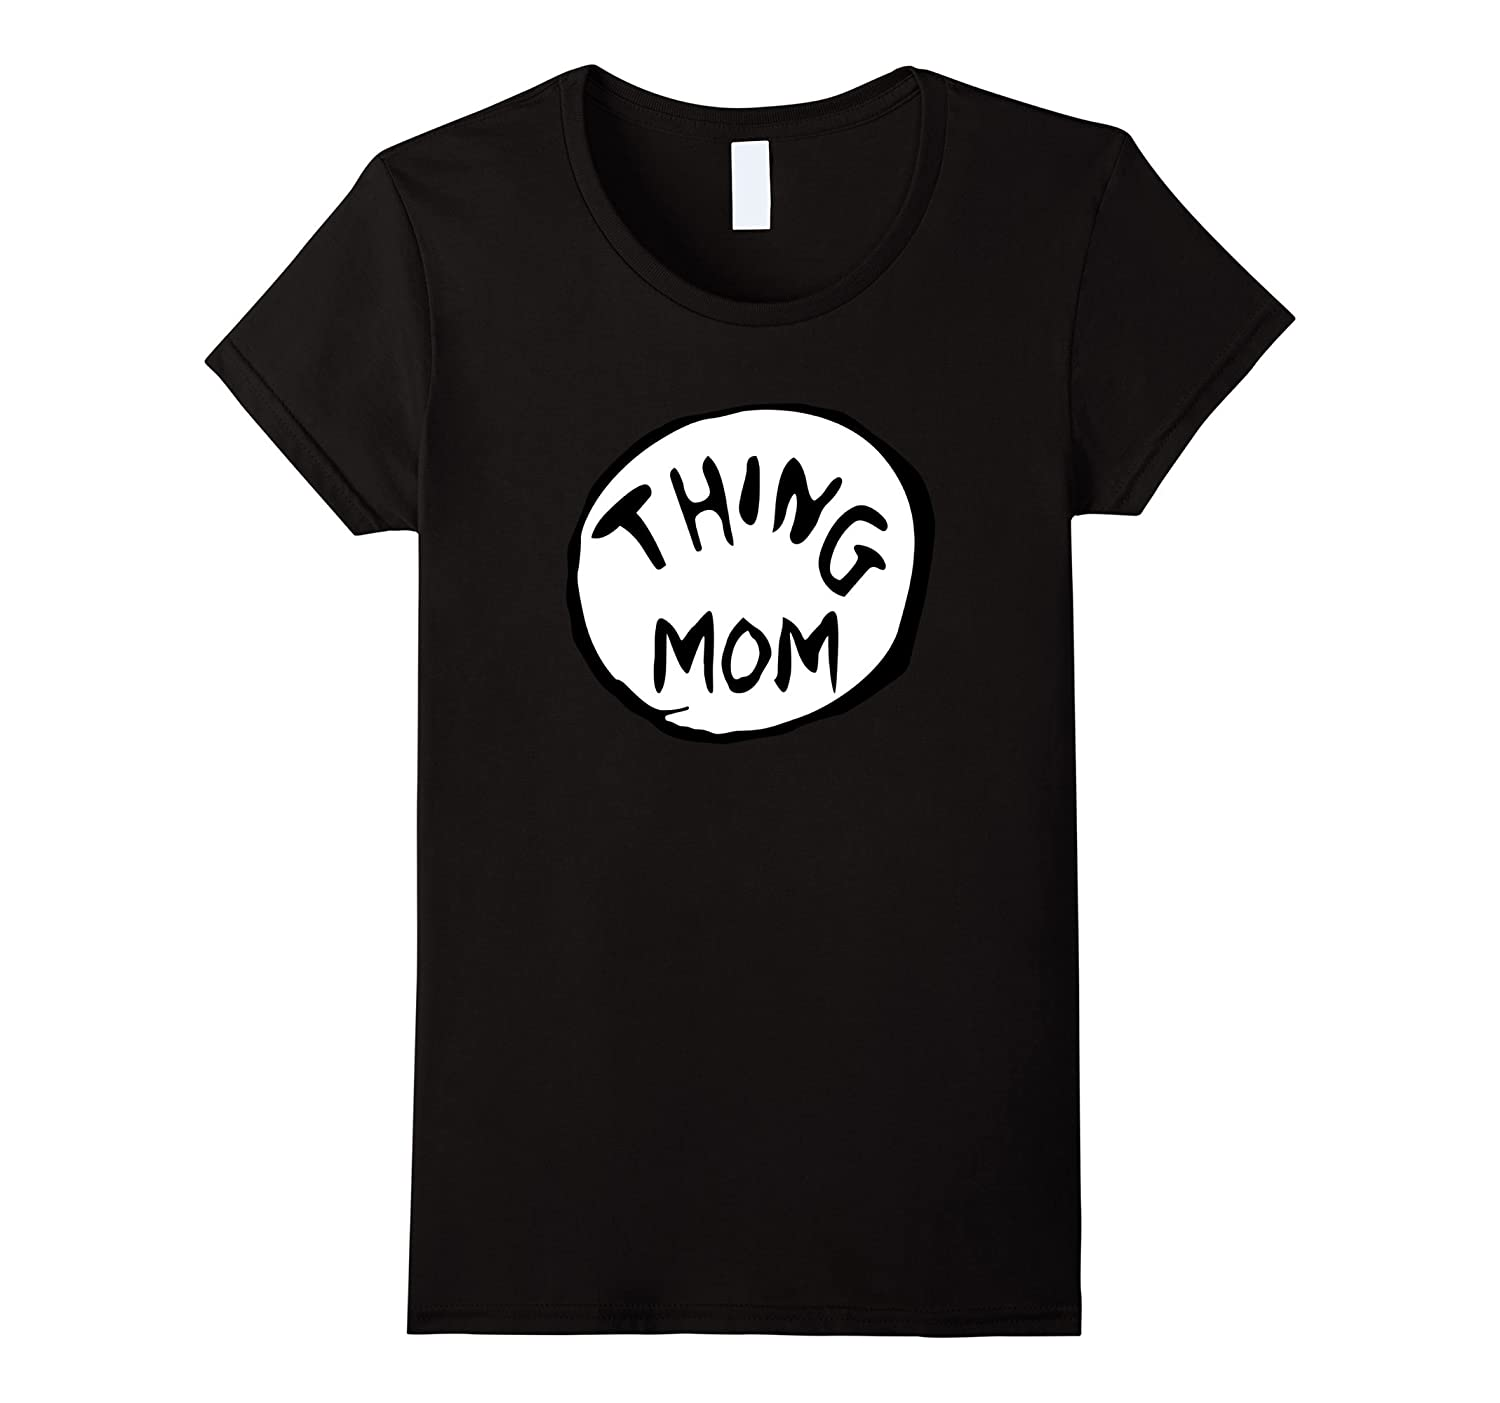 Women's Thing Mom Women T-Shirt - Mother's Day Gift Tshirt-T-Shirt